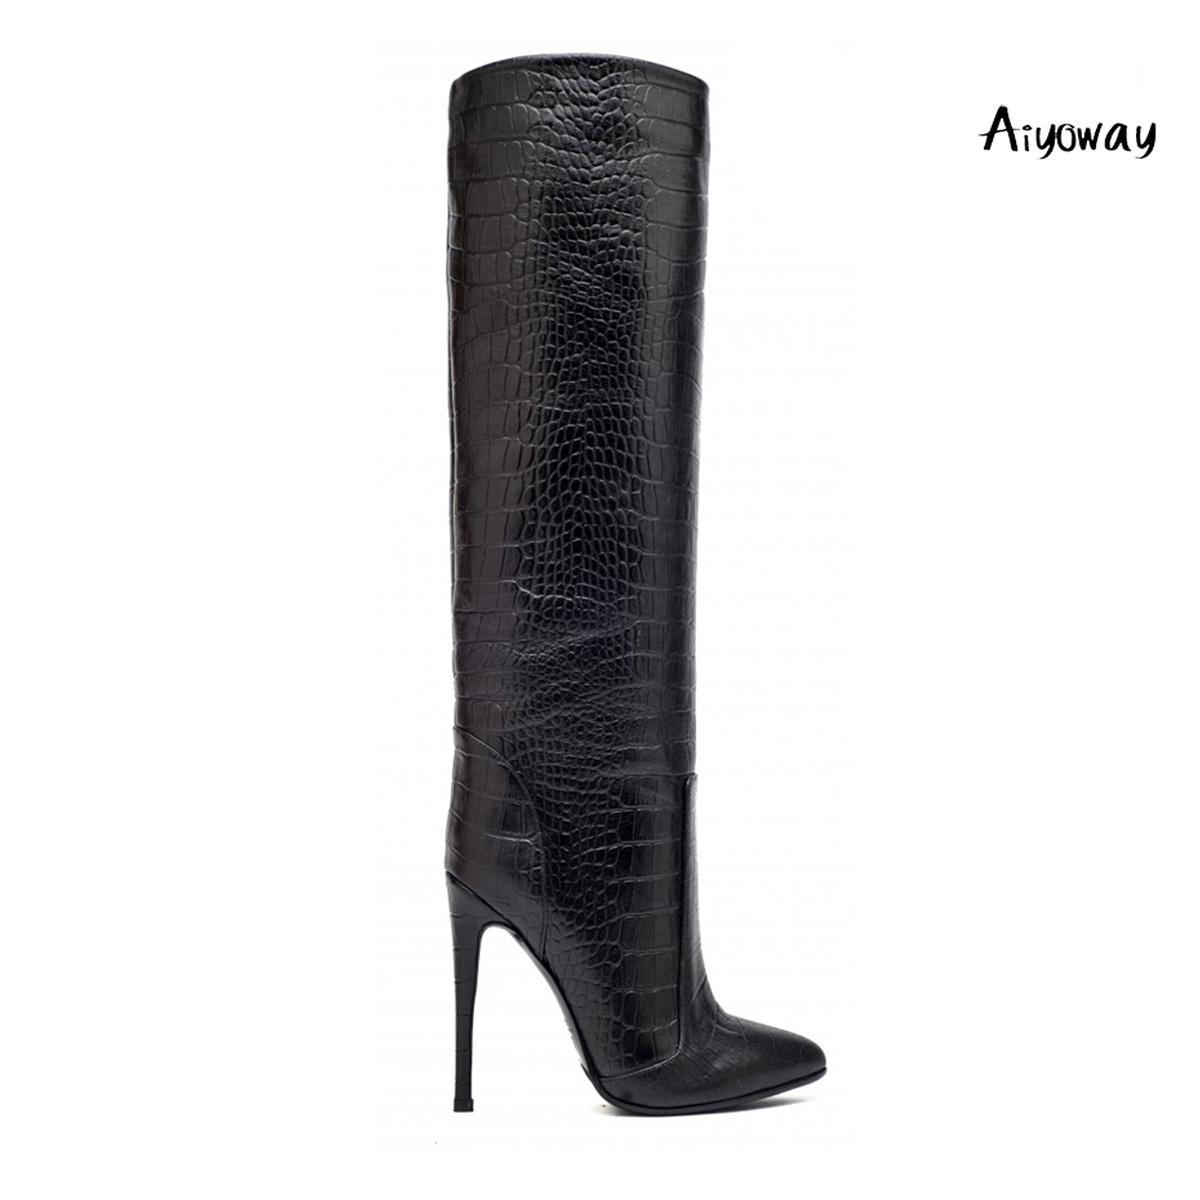 Aiyoway Fashion Women Shoes Pointed Toe High Heel Knee Boots Straight Shaft Wide Ankle Slip On Winter Party Dress ShoesAiyoway Fashion Women Shoes Pointed Toe High Heel Knee Boots Straight Shaft Wide Ankle Slip On Winter Party Dress Shoes